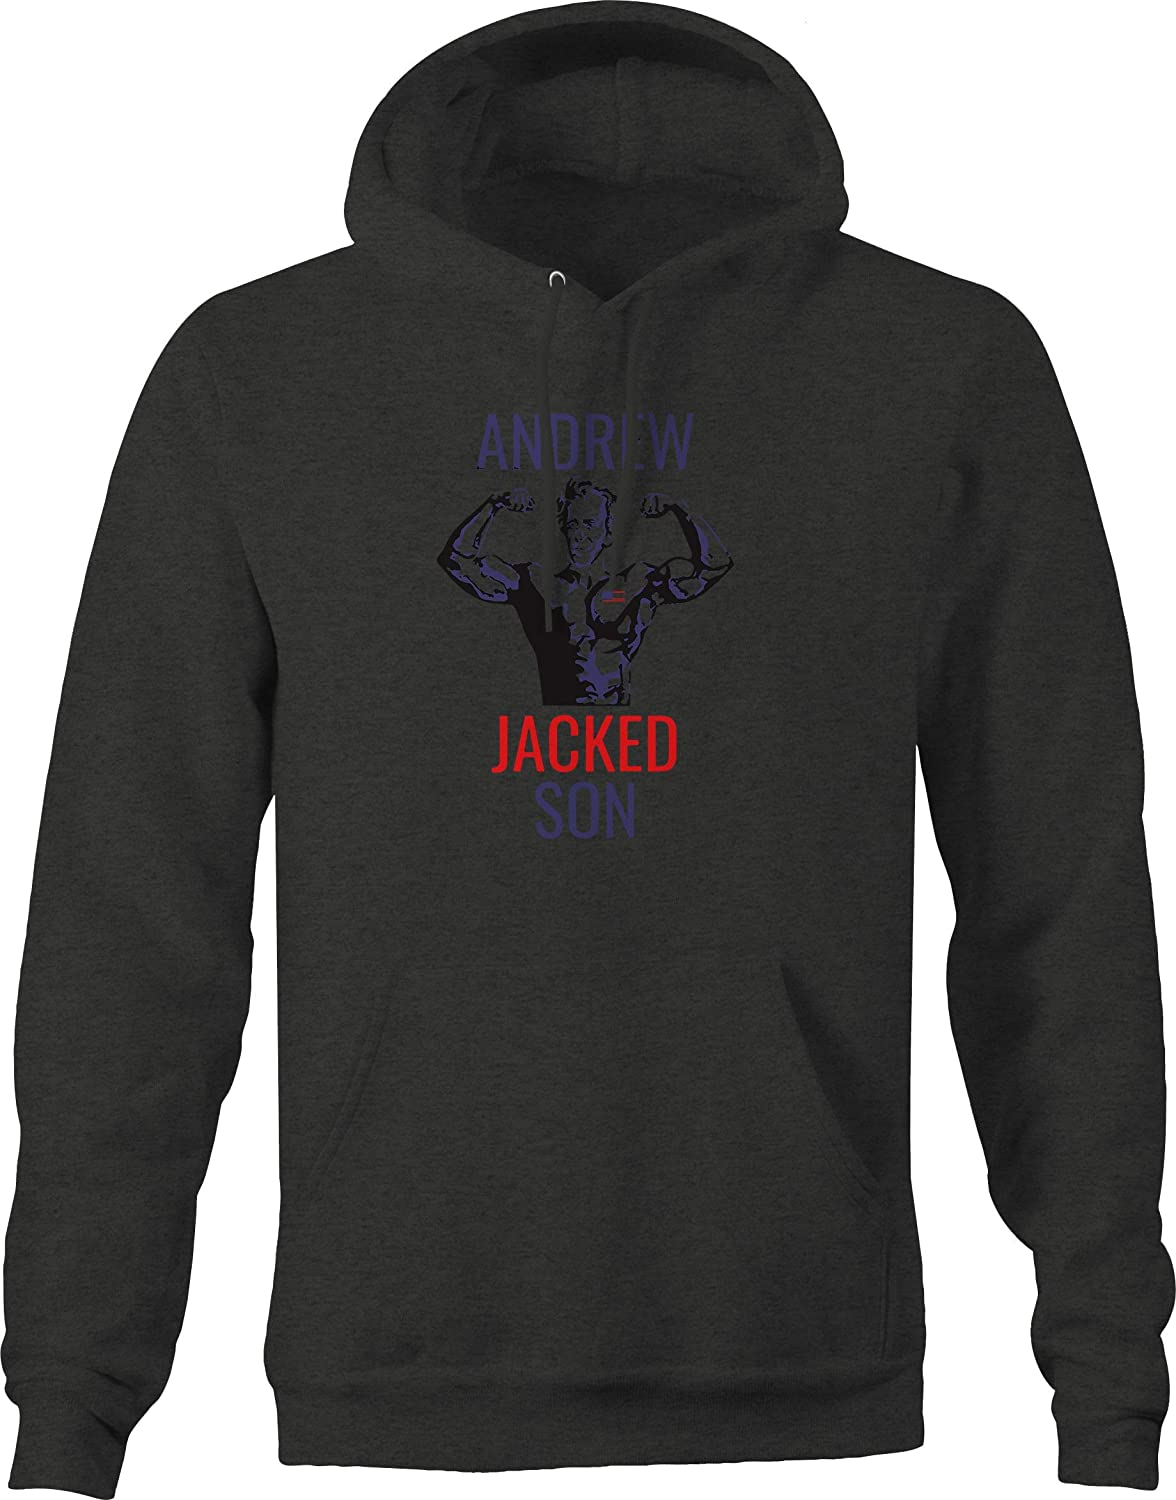 M22 Andrew Jacked Son Workout Funny President Sweatshirt